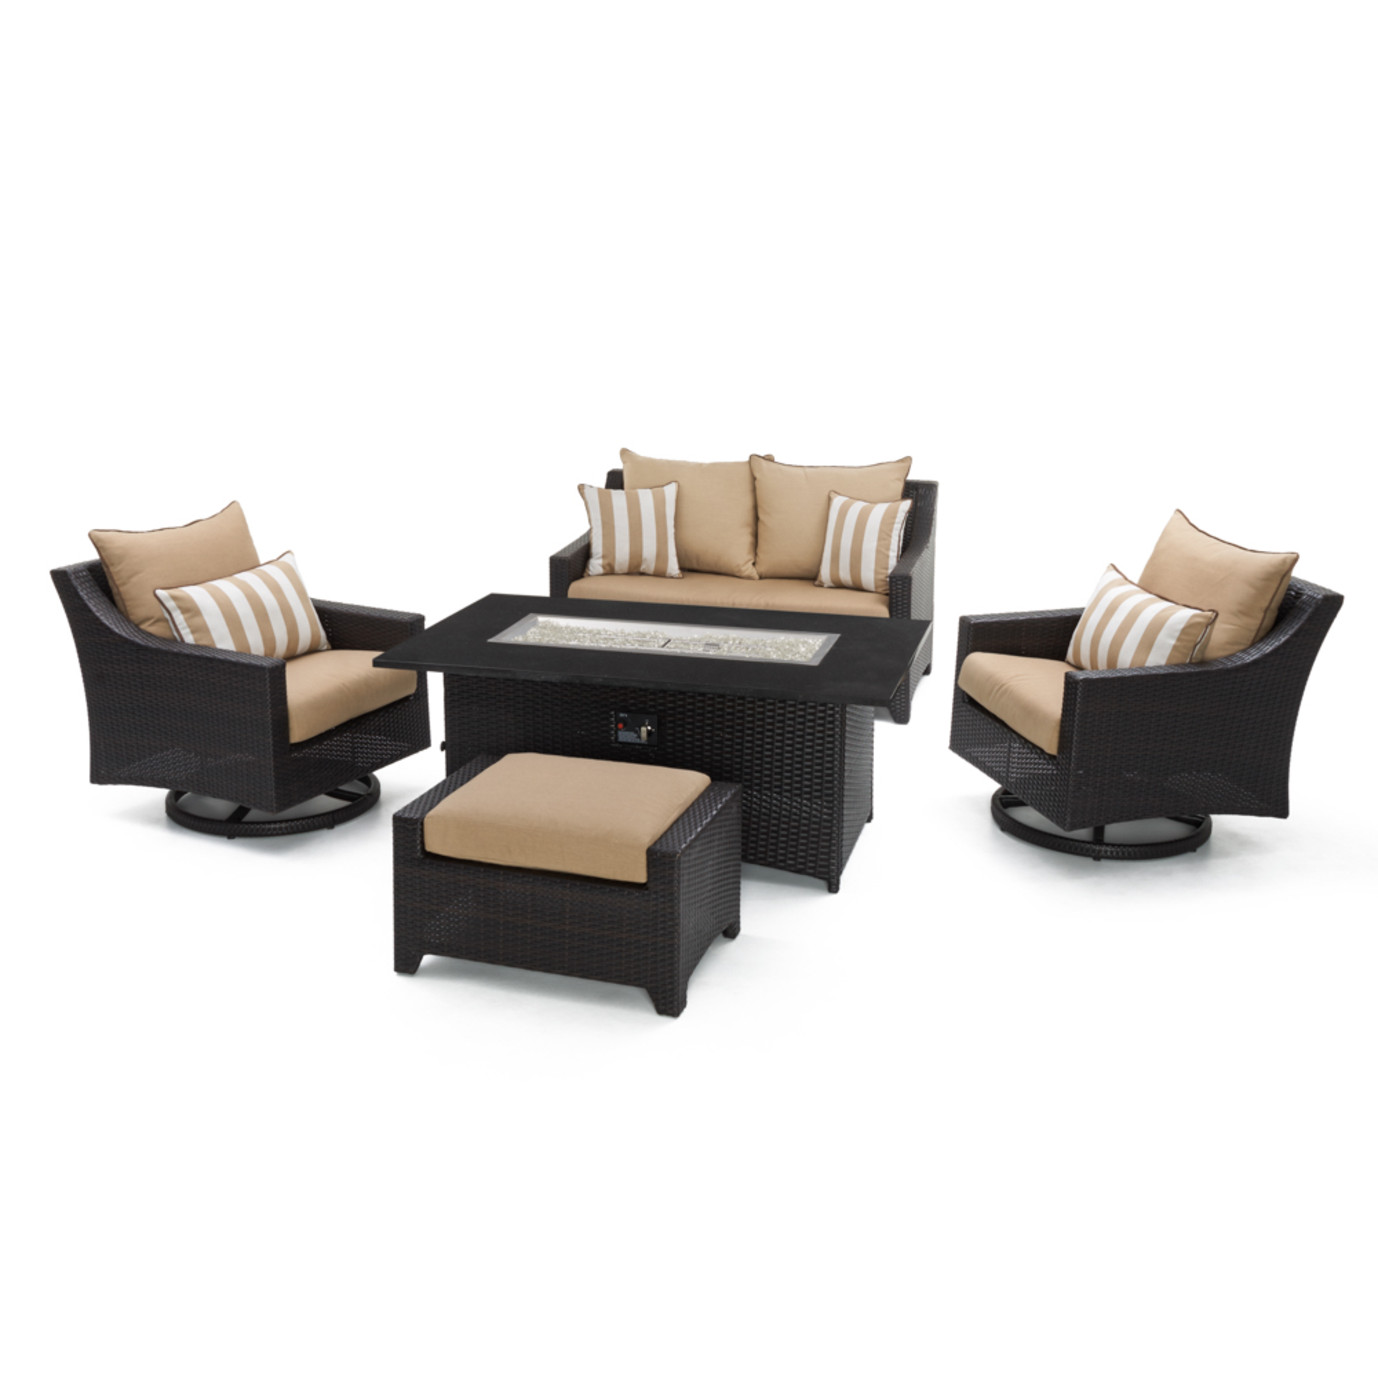 Deco™ 5pc Love & Motion Club Fire Set - Maxim Beige